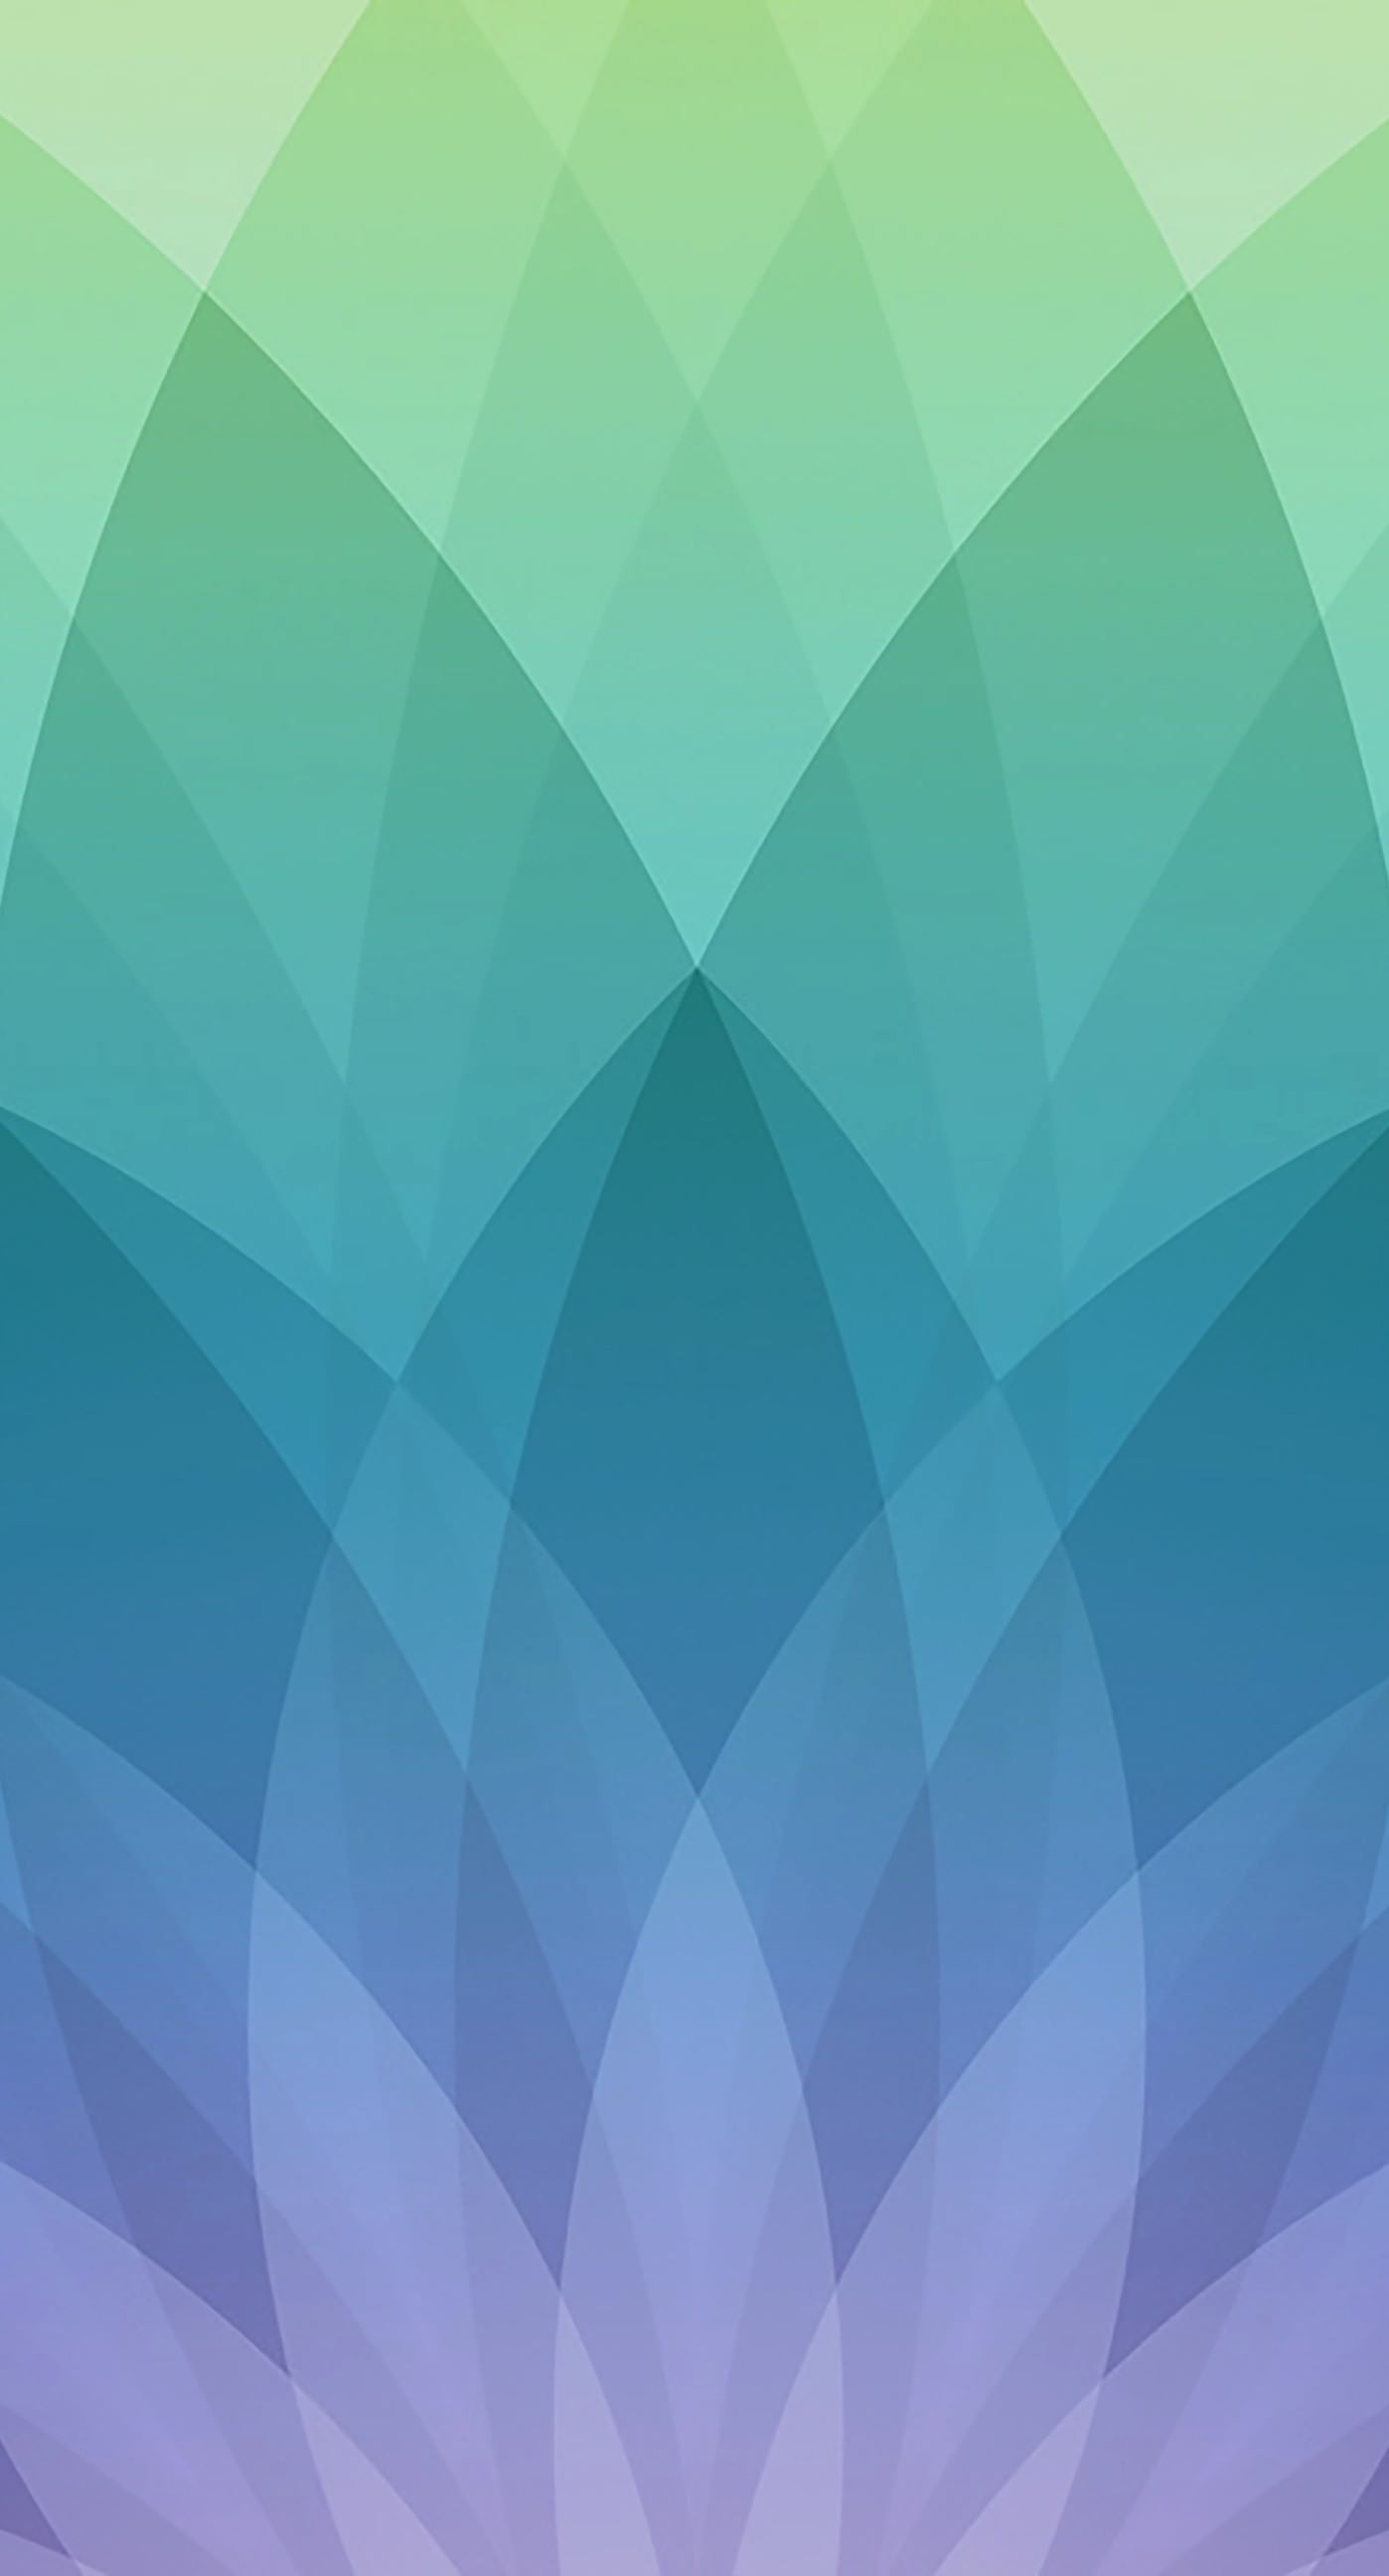 26 Awesome Wallpapers For Iphone 6s 6 5s 5